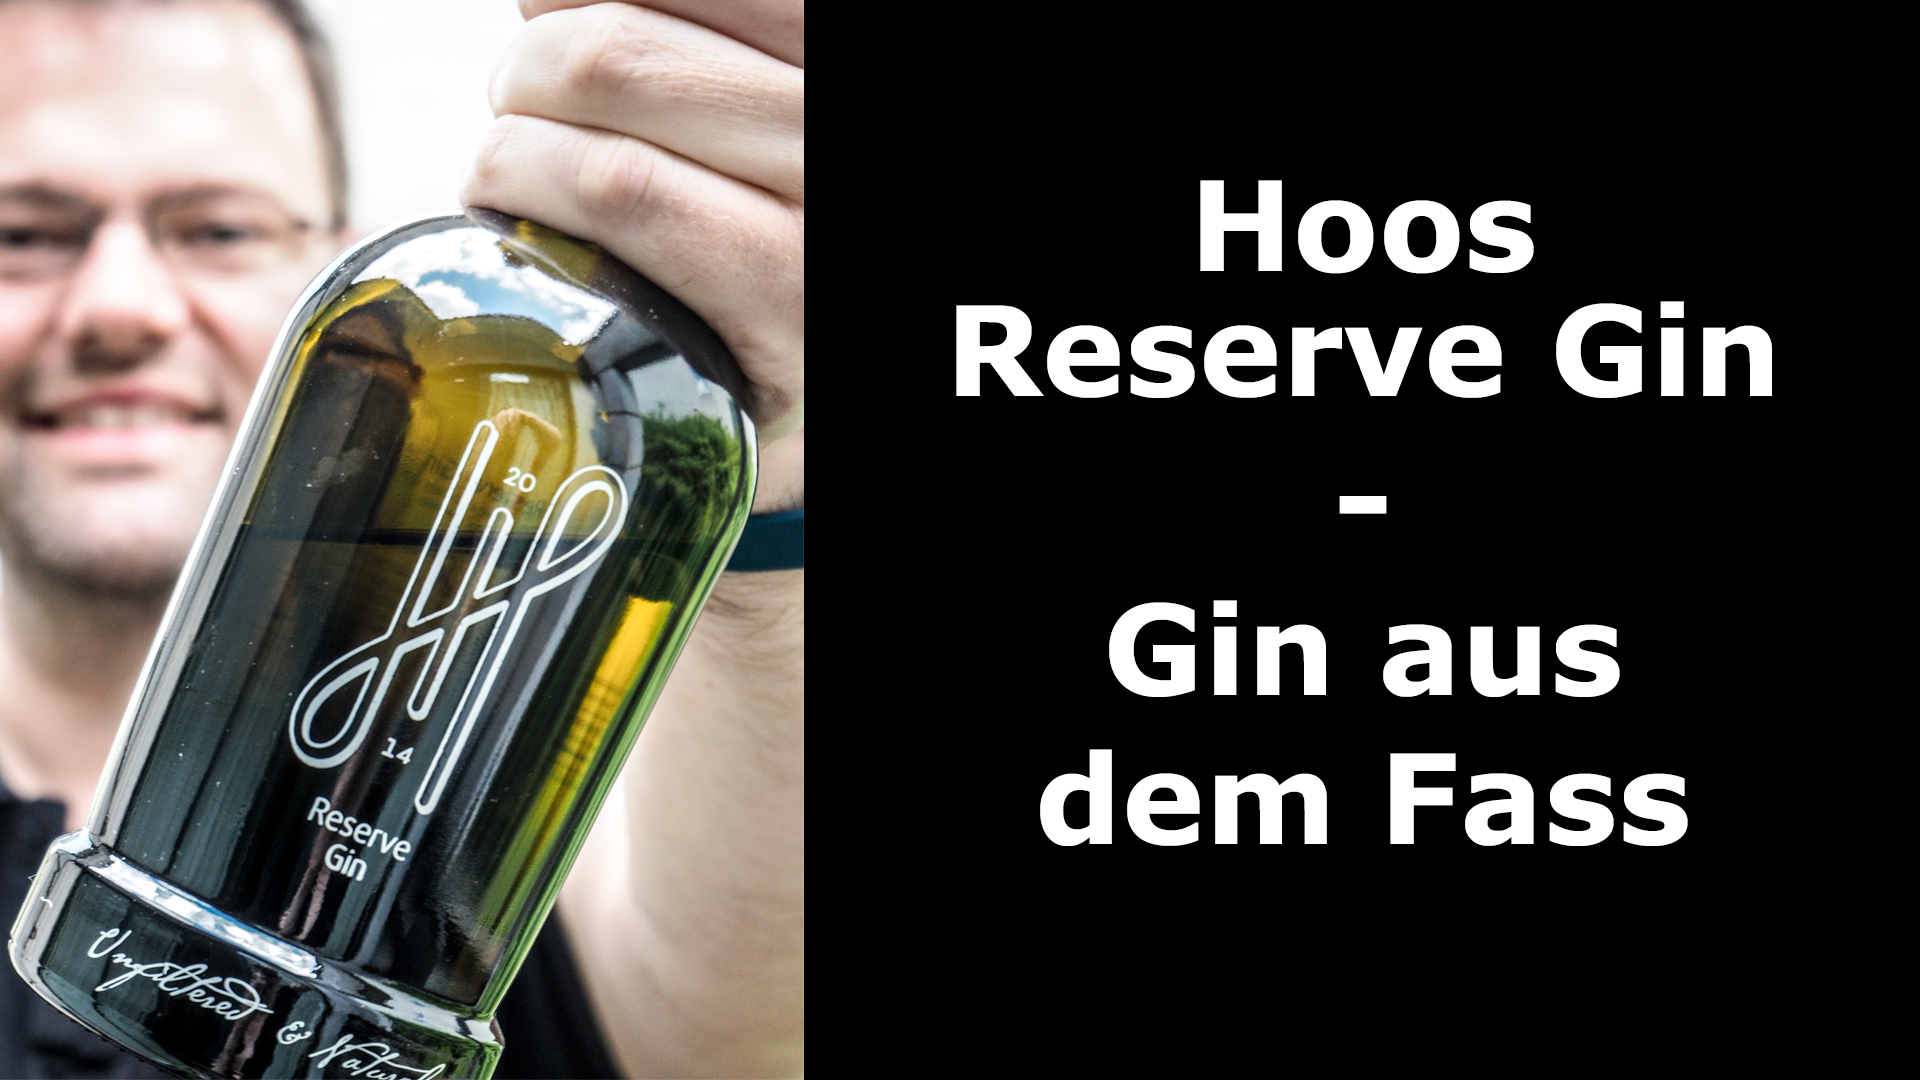 Hoos-Reserve-Gin